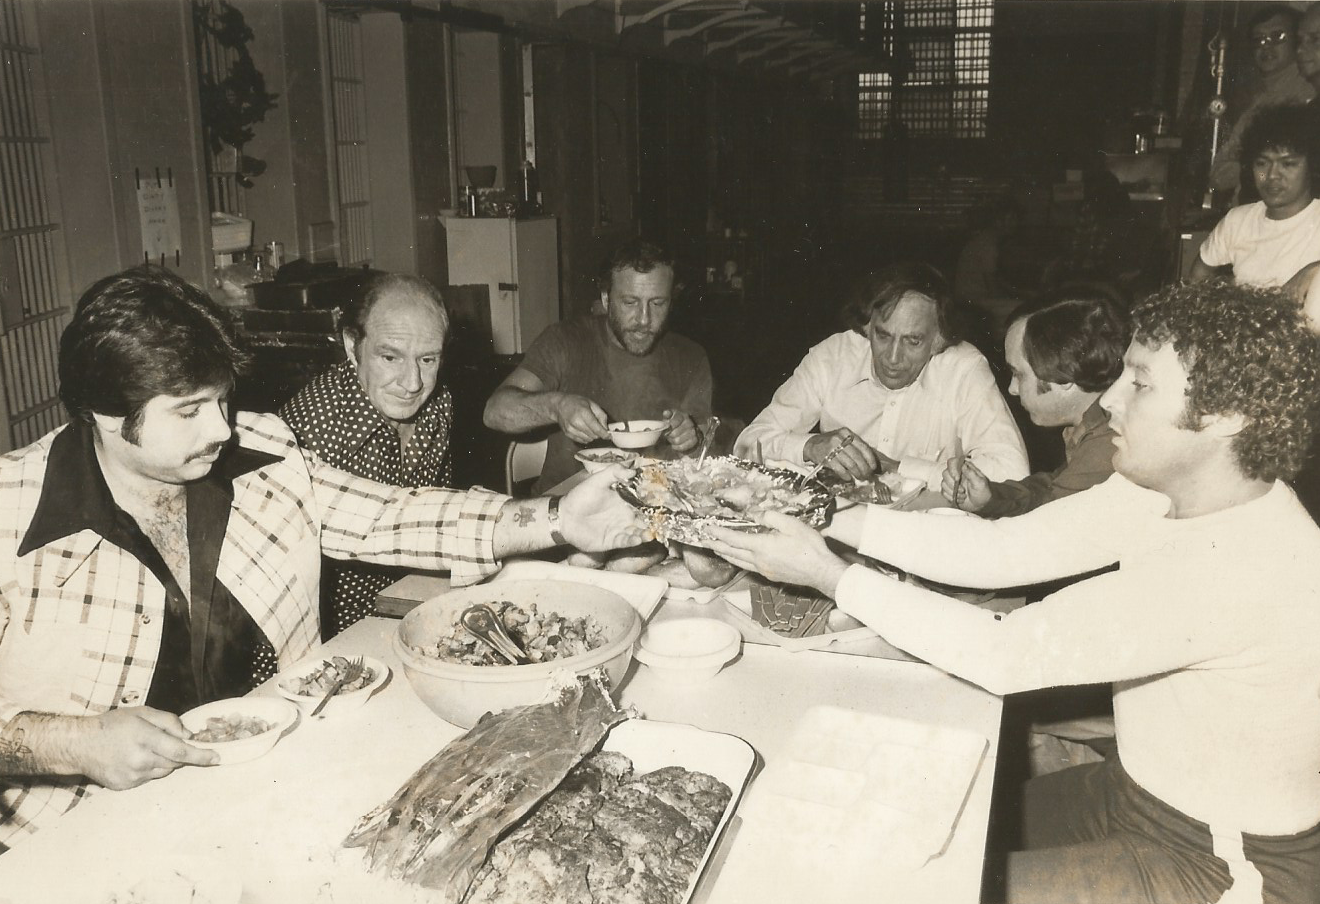 Ouimette, seated second from right, spent the 1970s in prison, but incarceration hardly slowed him down.He ran criminal enterprises from his cell, smuggled in alcohol, and enjoyed lavish dinners like the one pictured above.  Courtesy of The Providence Journal.